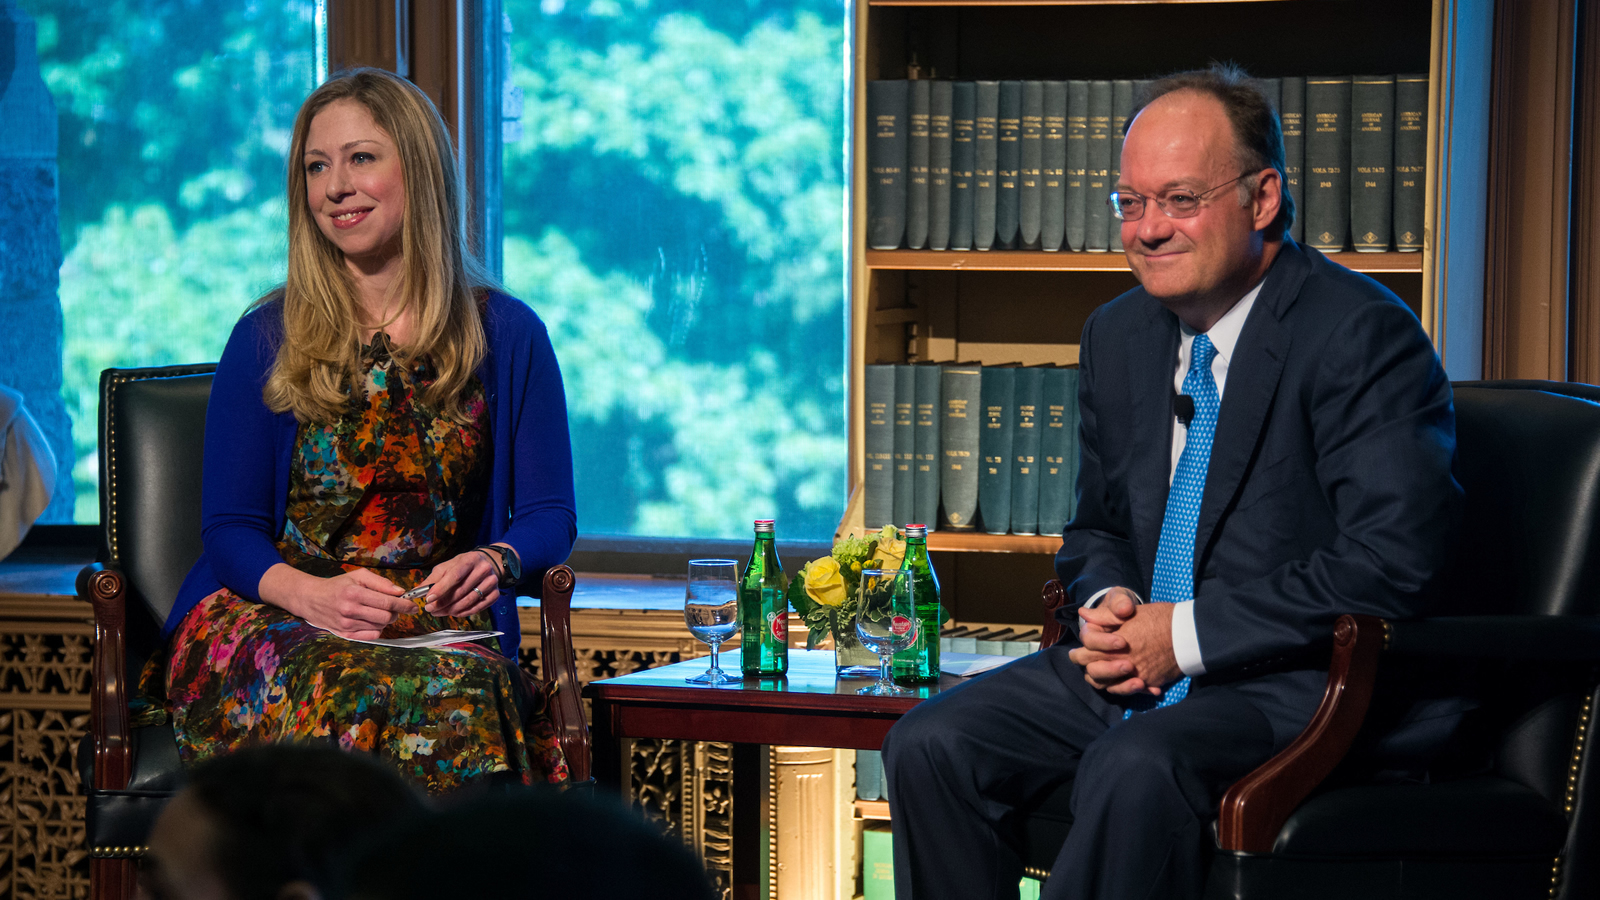 Chelsea Clinton and John DeGioia